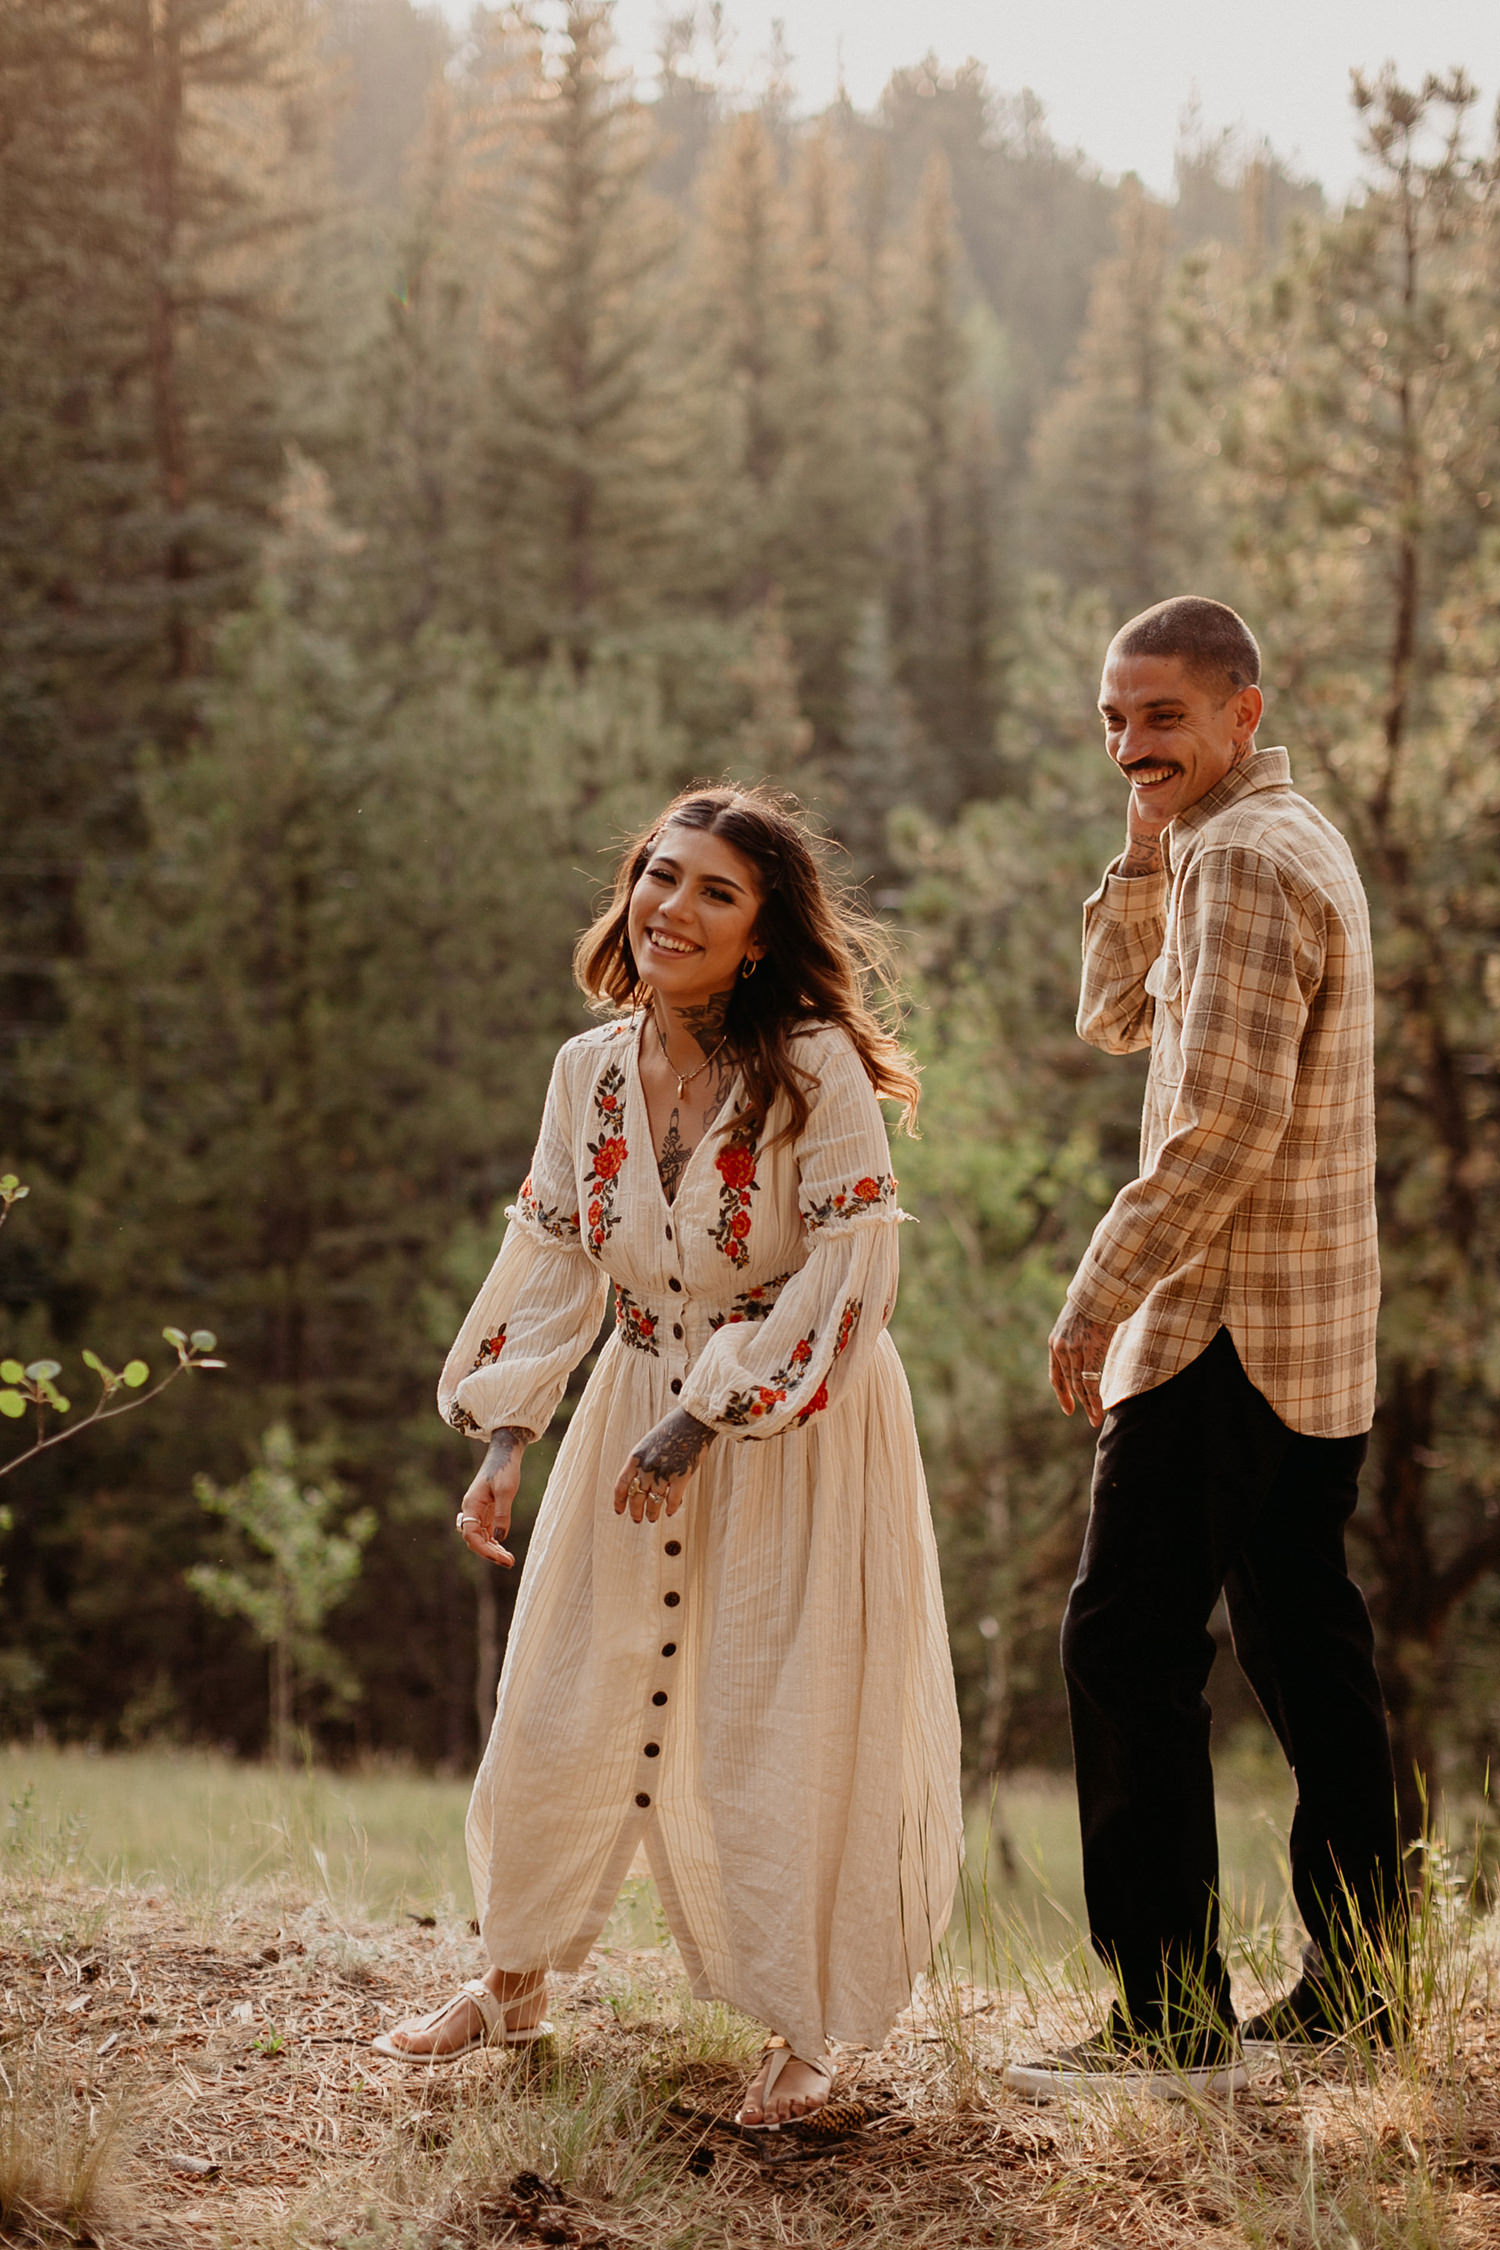 Bailey Colorado Denver Wedding Engagement Photographer Liz Osban Cheyenne Wyoming Mountain Elopement Boho bohemian vintage film tattoo non traditional tattooed rock and roll 13.jpg